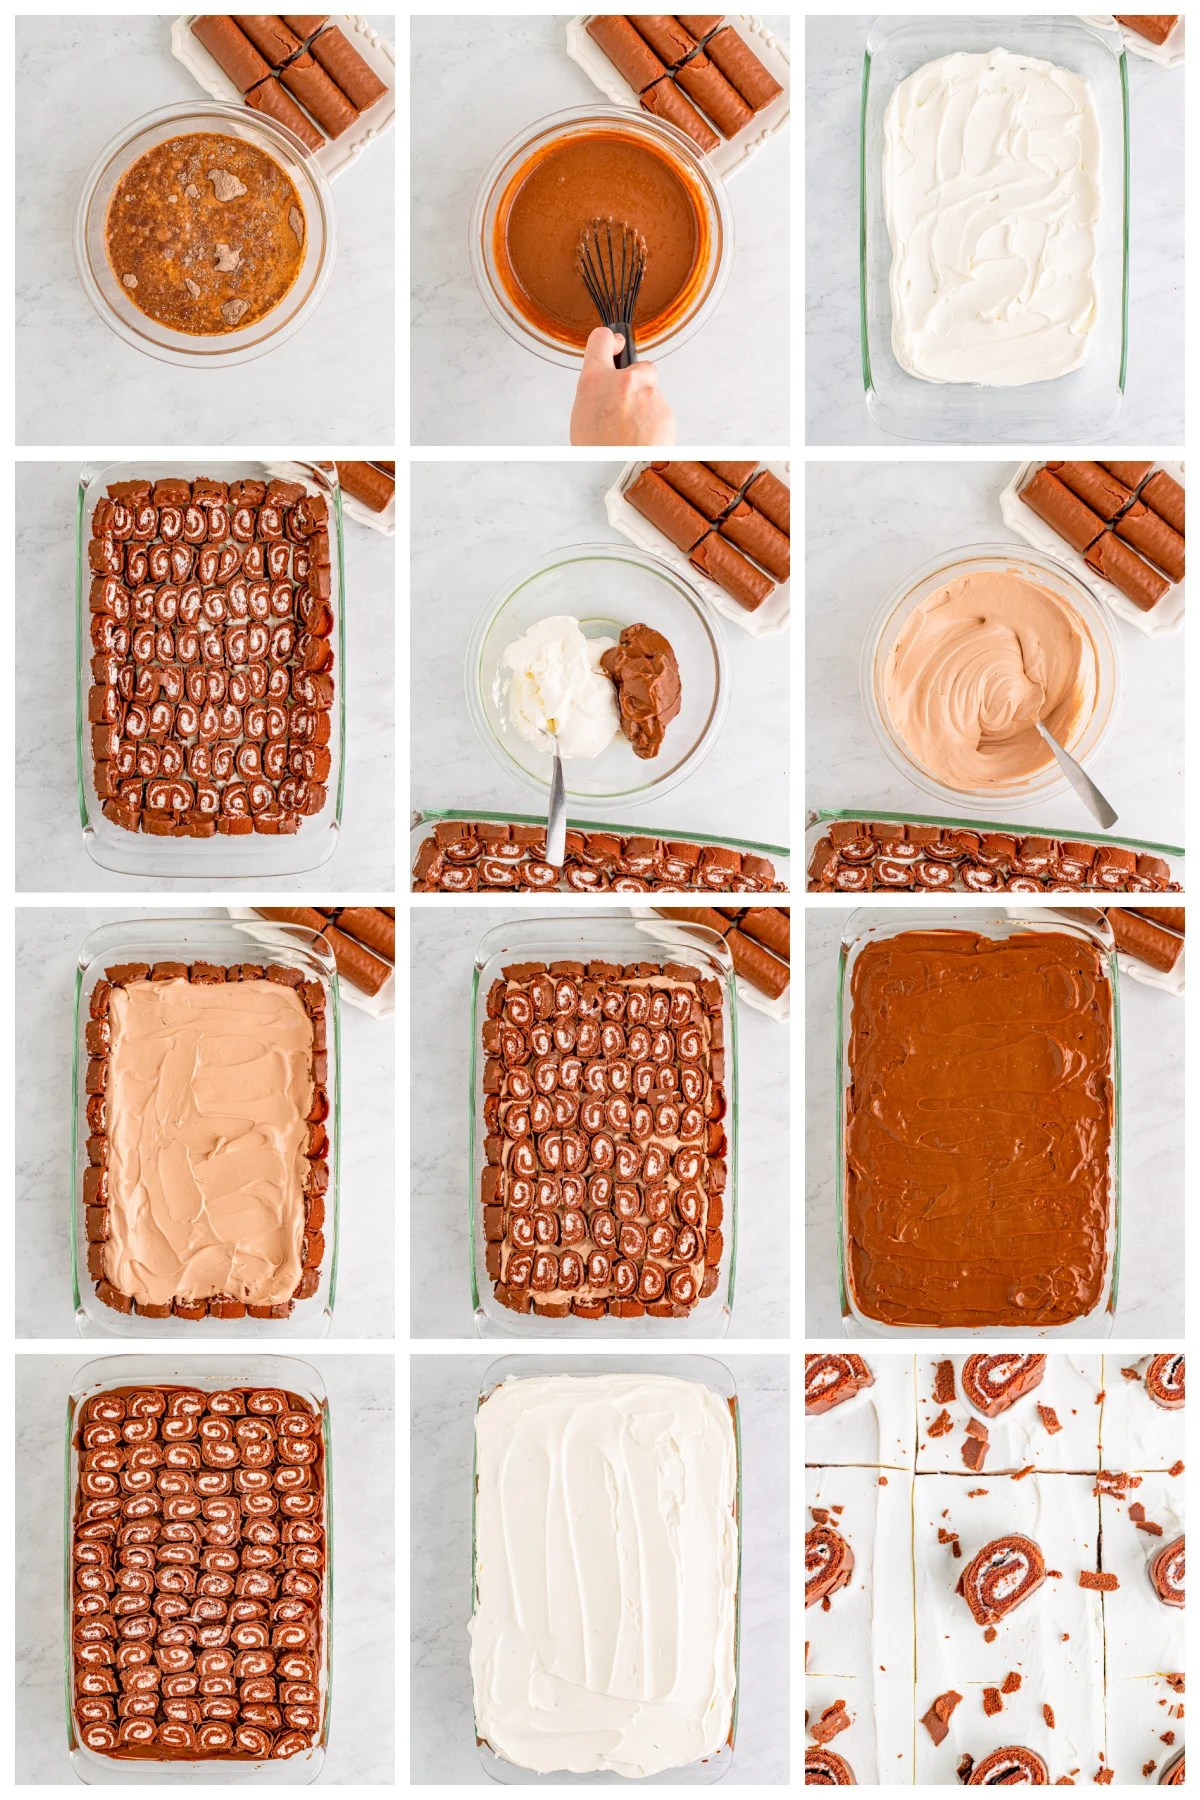 Step by step photos on how too make a Swiss Cake Roll Lush Cake